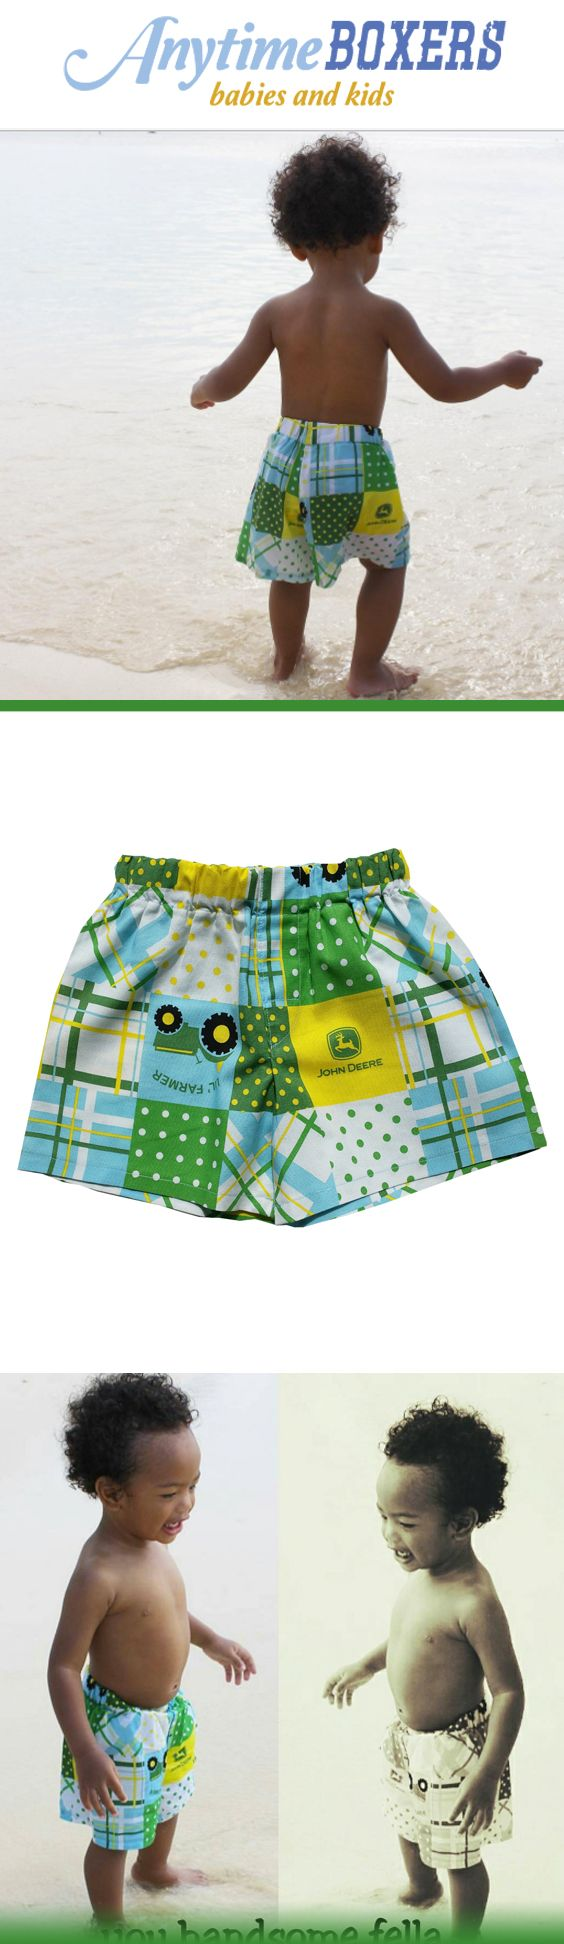 Boys Clothes, Boys Fashion, Kids boxers, Boxers Hombre, Children Underwear Boxer Boys Briefs; Panties Baby, Toddlers and Boys boxer/shorts are basically the cutest thing ever. He'll look like Daddy's mini-me in this precious pair! Our boxers fit sizes: Infants 6 - 24 mos; Toddlers 3t-4t; Boys 3-6;  AVAILABLE NOW! From $12.99